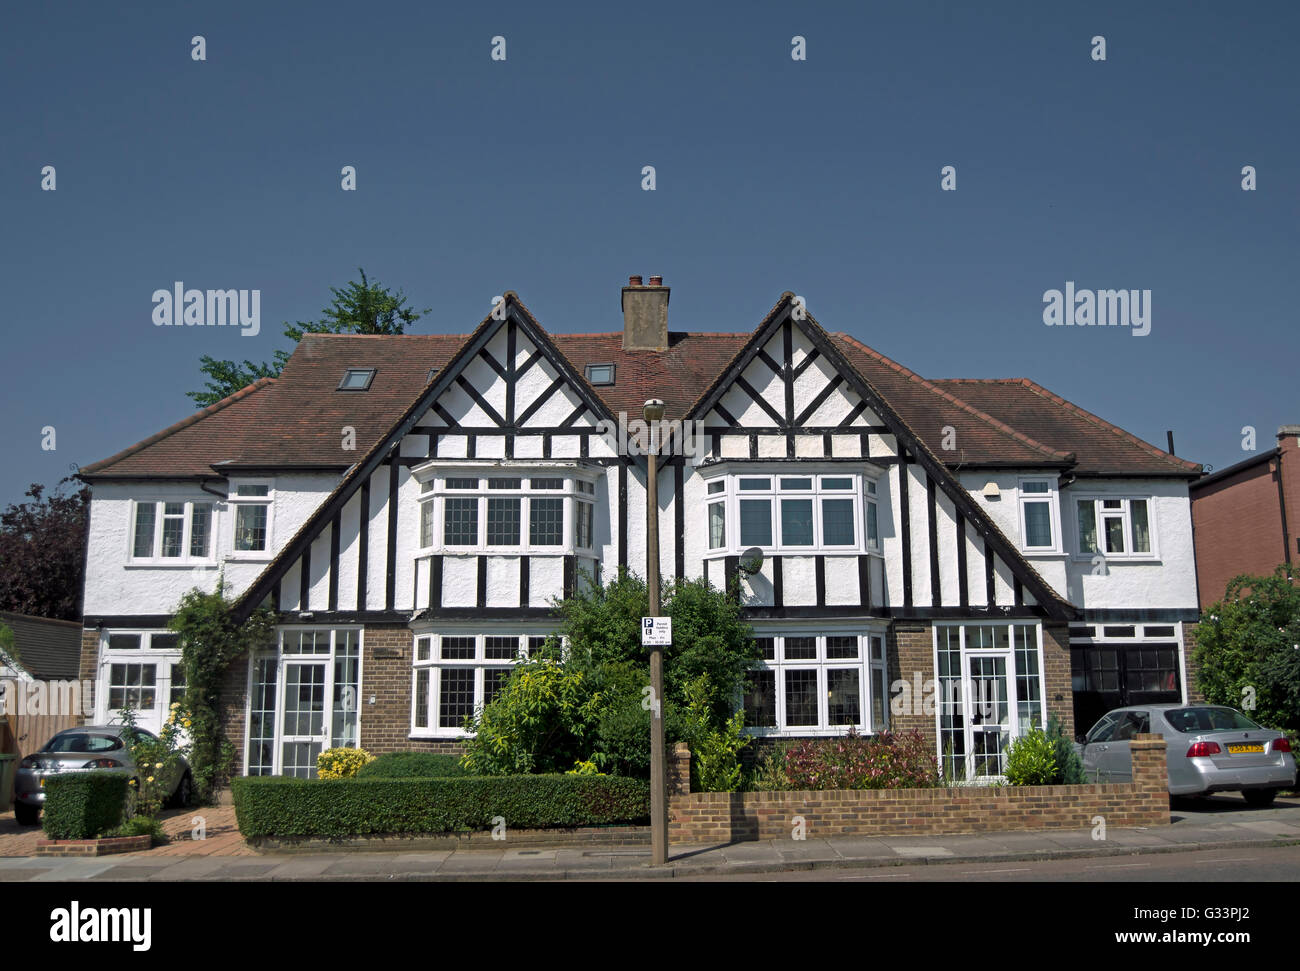 matching semi-detached mock tudor houses in strawberry hill, twickenham, middlesex, england - Stock Image